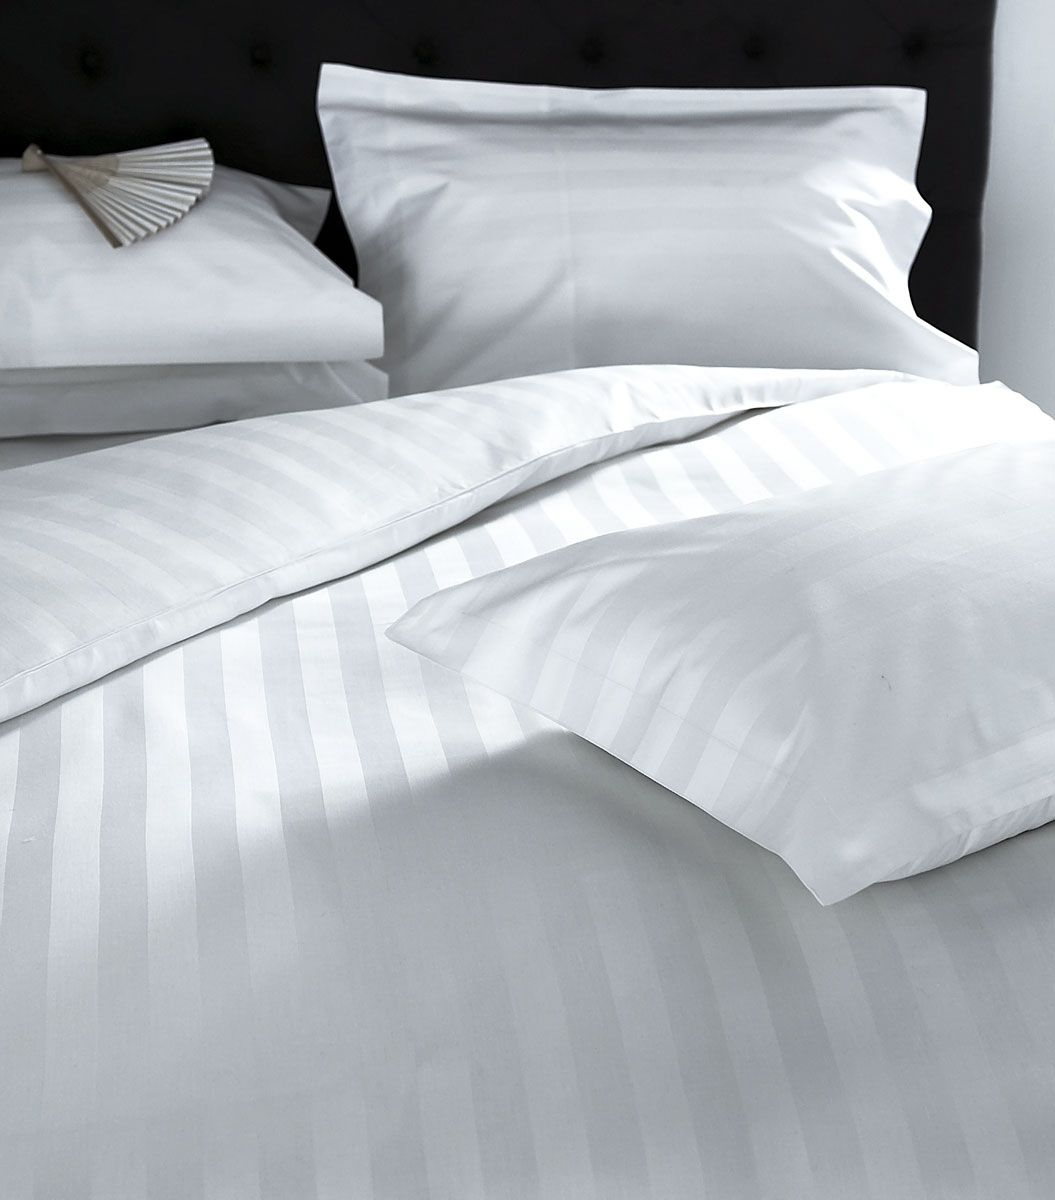 Hampstead White Satin Stripe Bedlinen White Bedspreads And Bed - Brown pattern bedding double duvet set calvin klein bamboo bedding